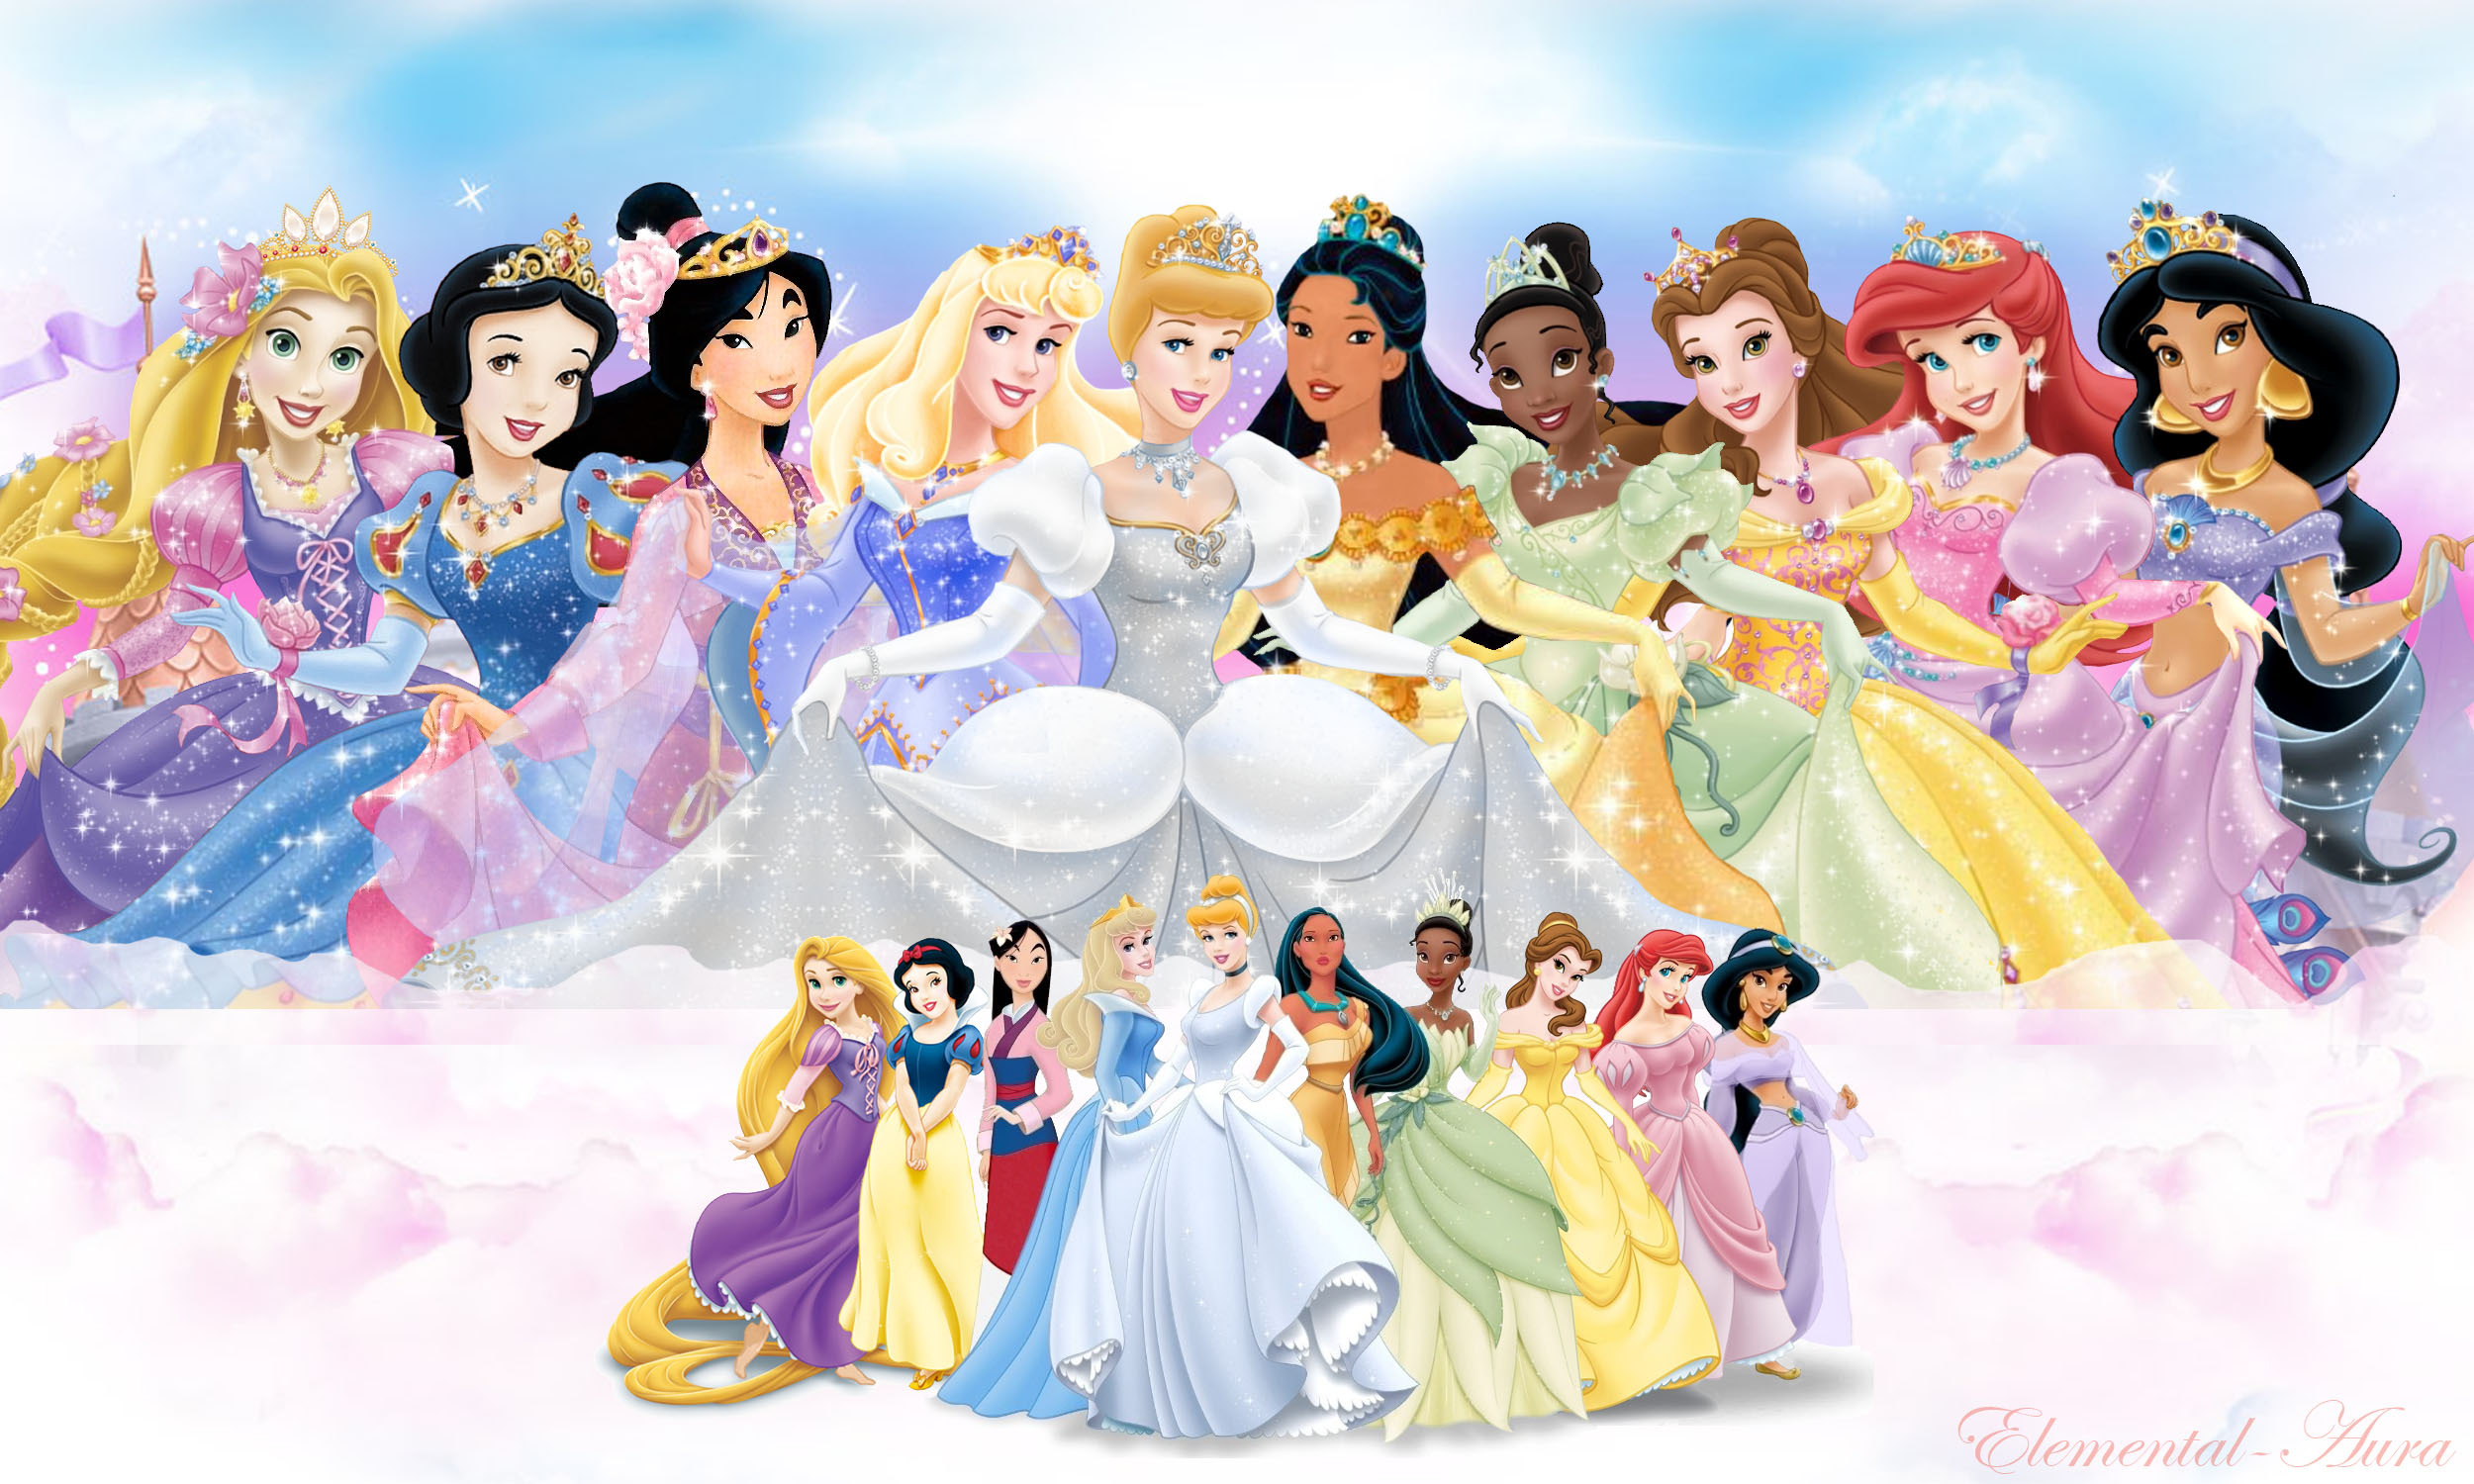 Disney com princess castle backgrounds disney princesses html code - Disney Characters Wallpaper Hd Wallpaper Background Disney Characters Wallpaper Hd Wallpaper Background 0 Html Code